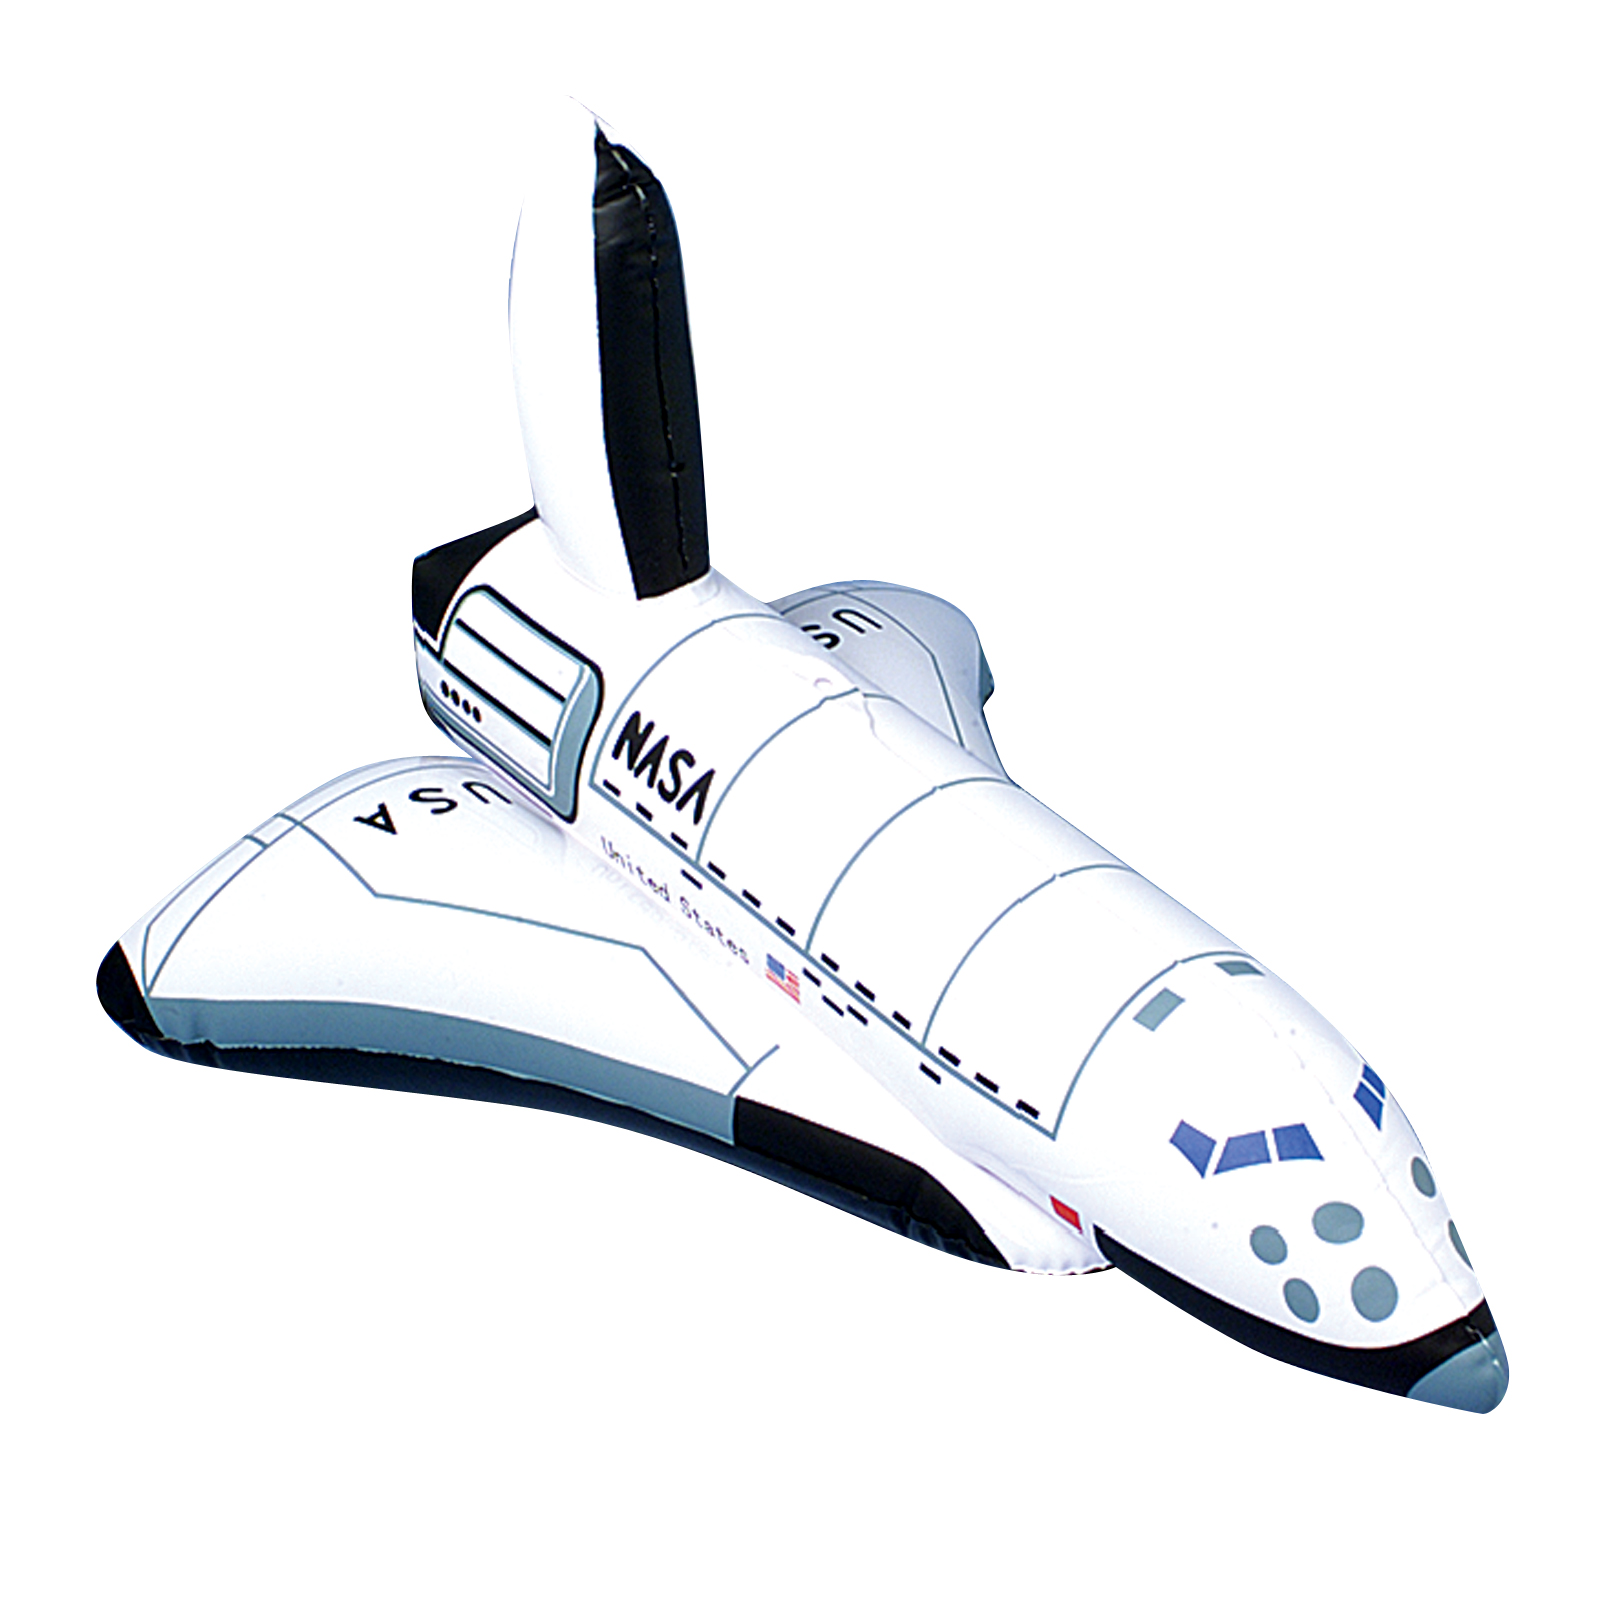 50 images of Rocket Ship Picture . You can use these free cliparts for ...